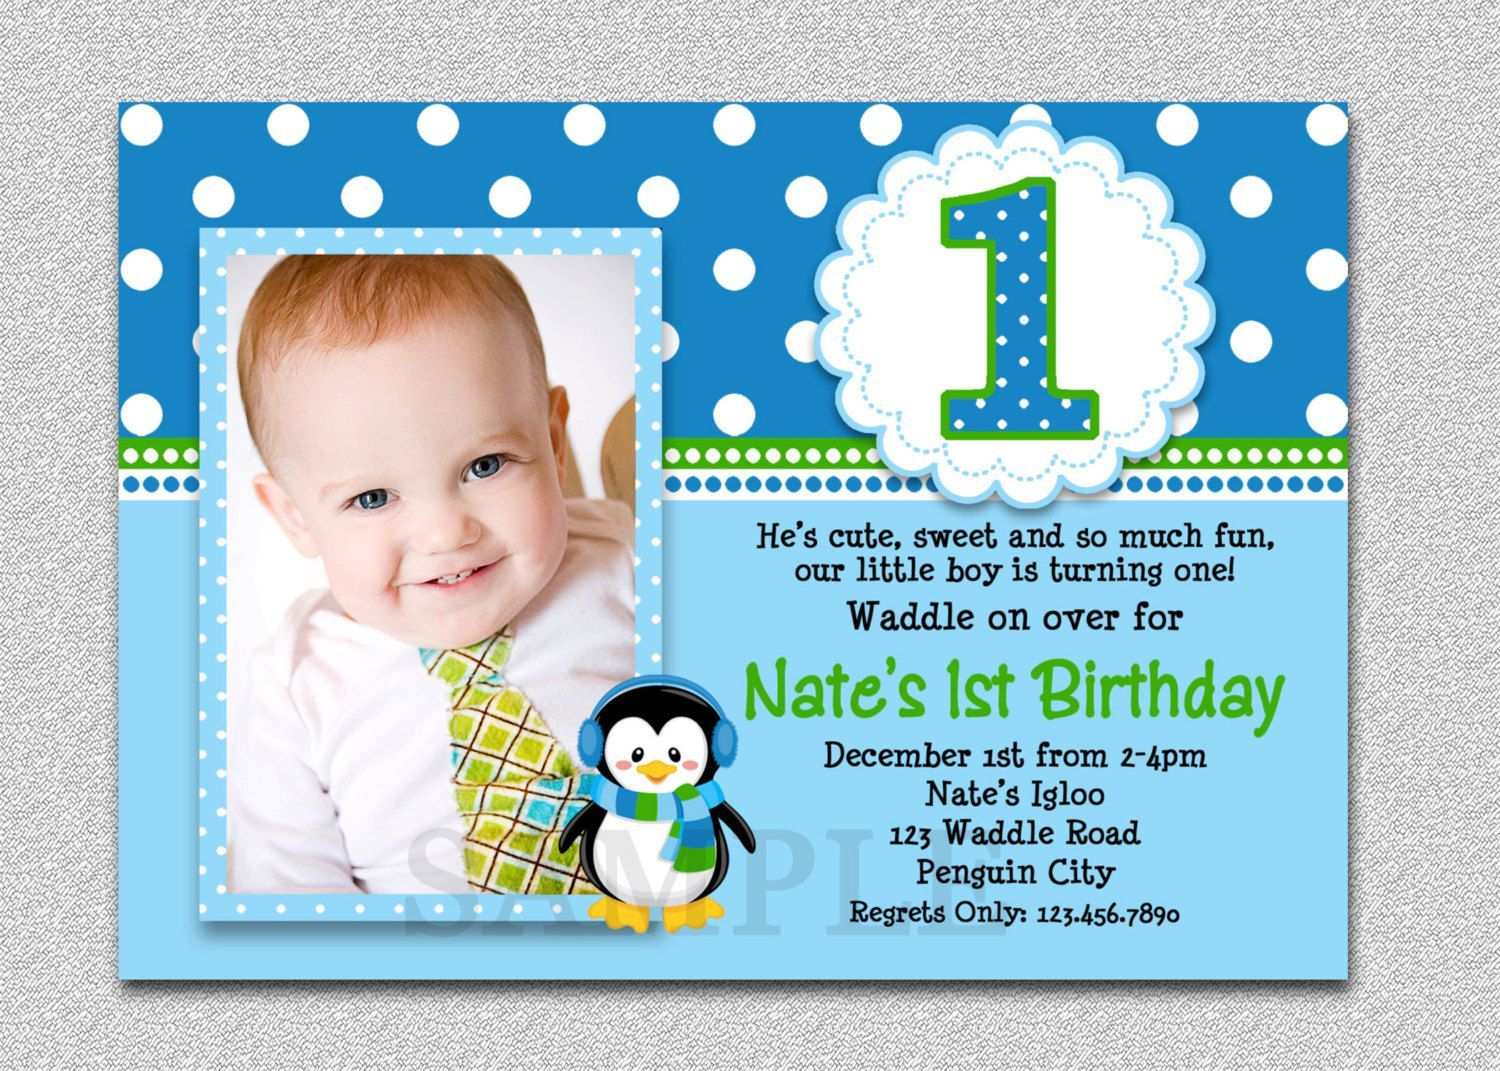 invitation card maker for christening and birthday ; 3e28f1534a16f97f396b1de1fc1b9382